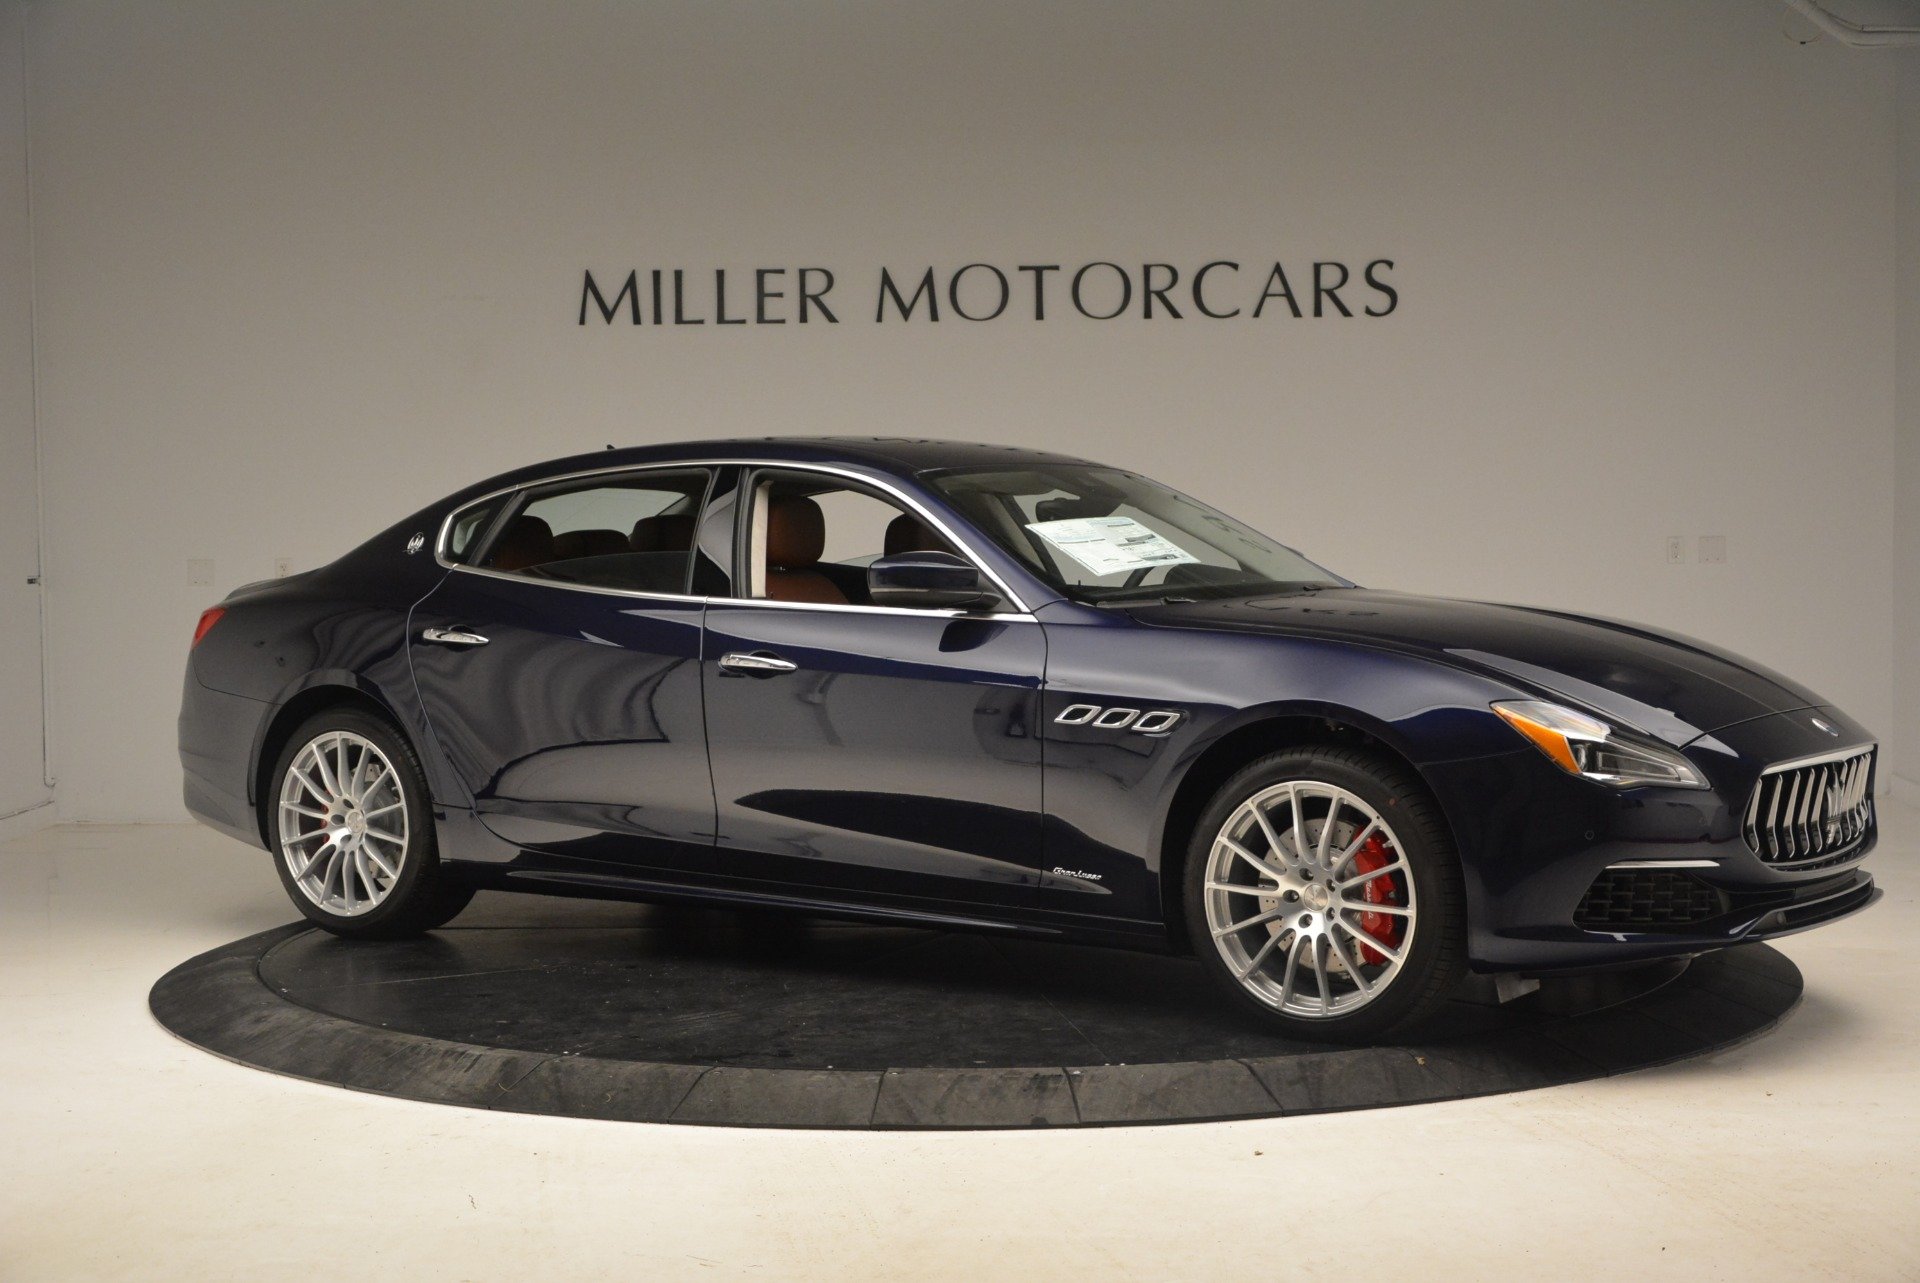 New 2019 Maserati Quattroporte S Q4 GranLusso For Sale In Greenwich, CT 2767_p10